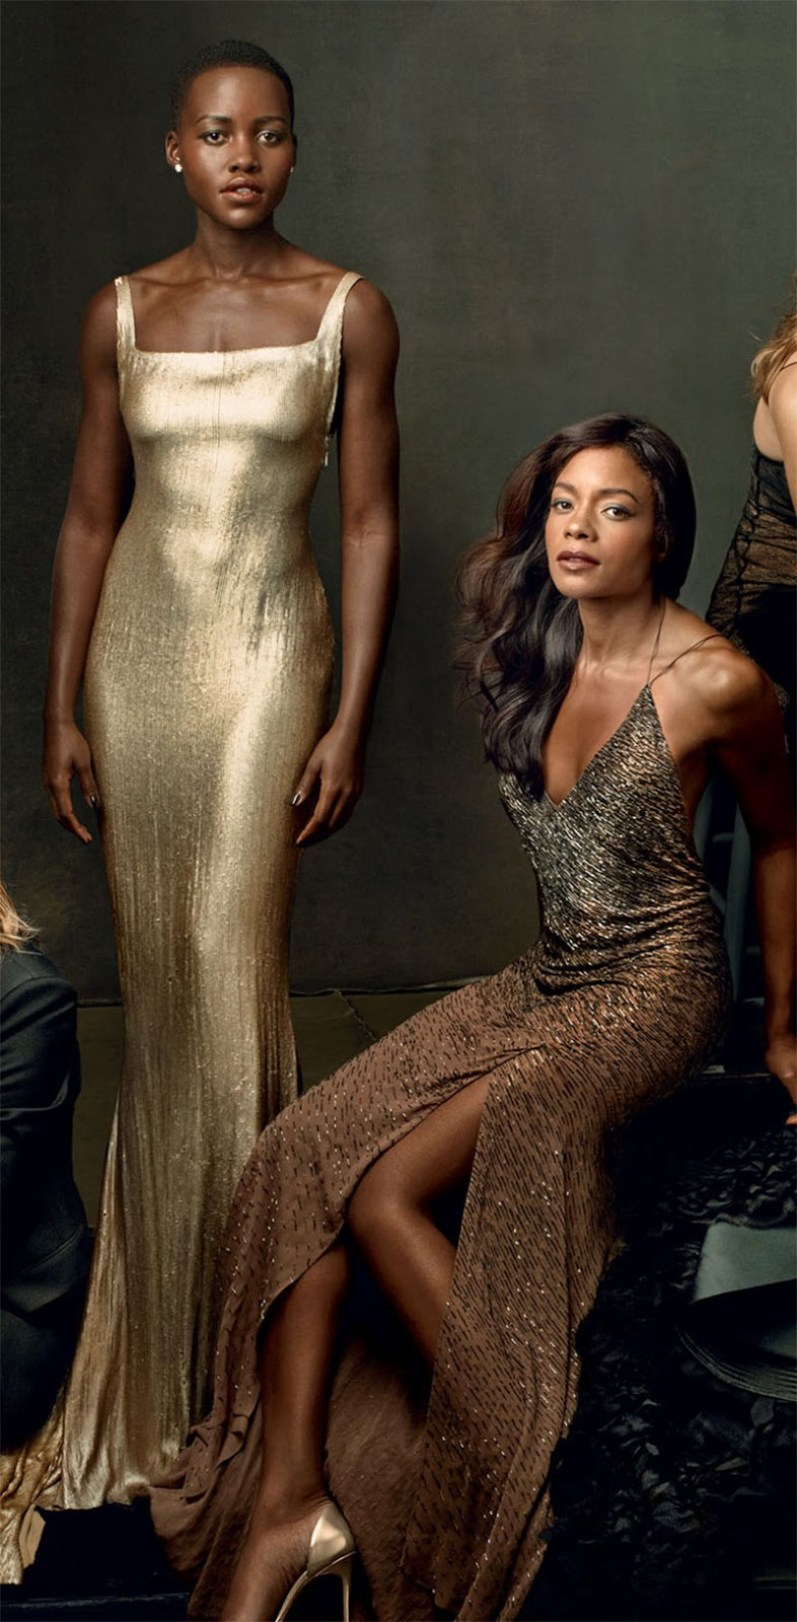 Vanity Fair's 2014 Hollywood Issue Cover, Close Up ... | 797 x 1622 jpeg 224kB